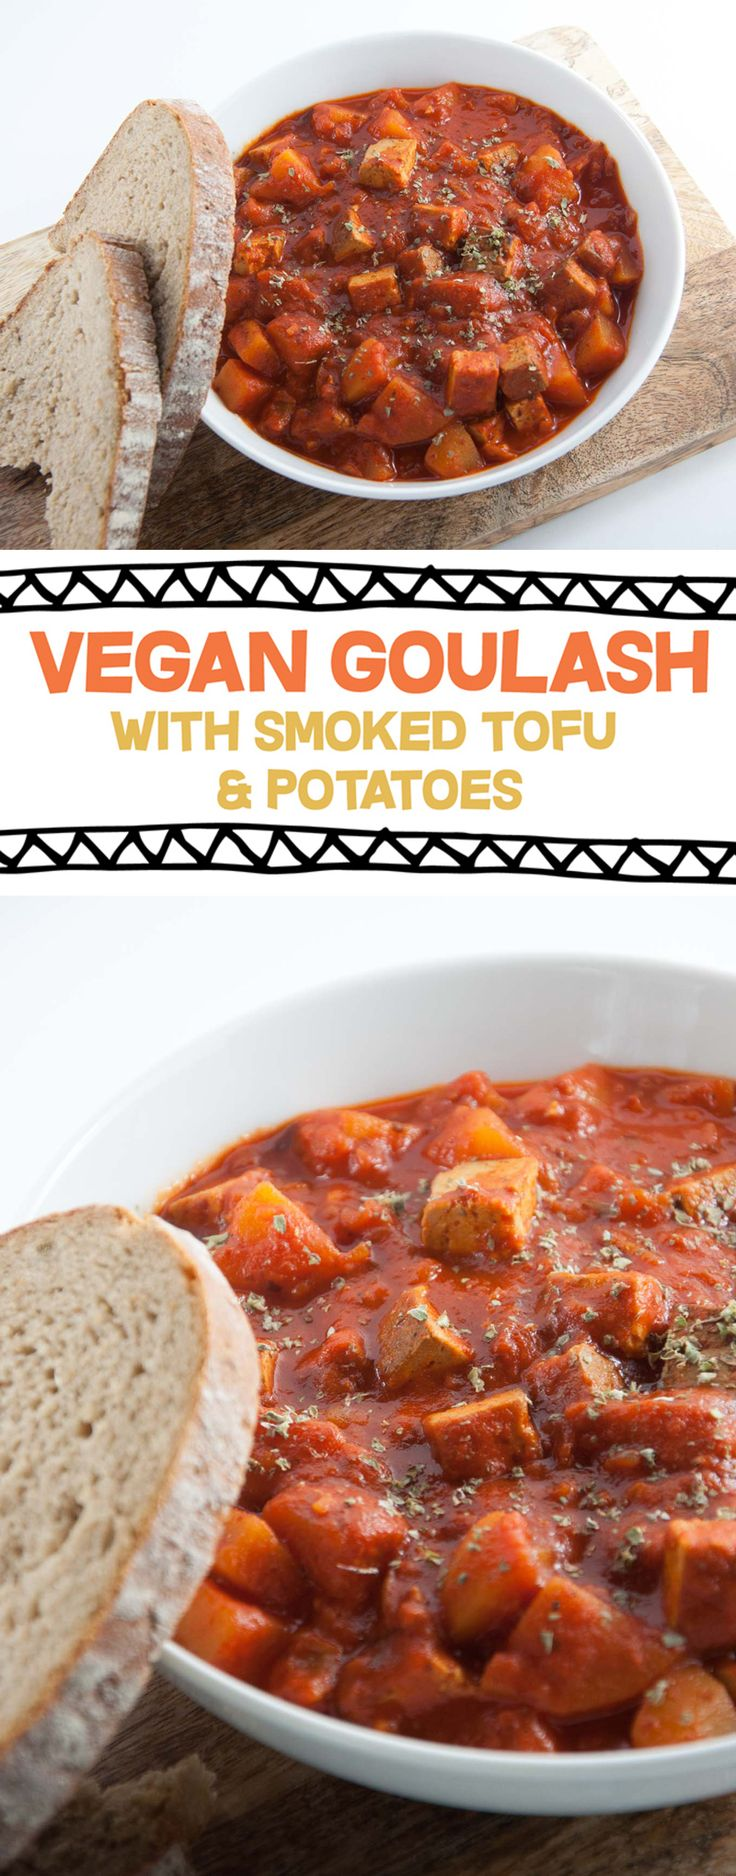 Vegan Goulash with Smoked Tofu and Potatoes | ElephantasticVegan.com